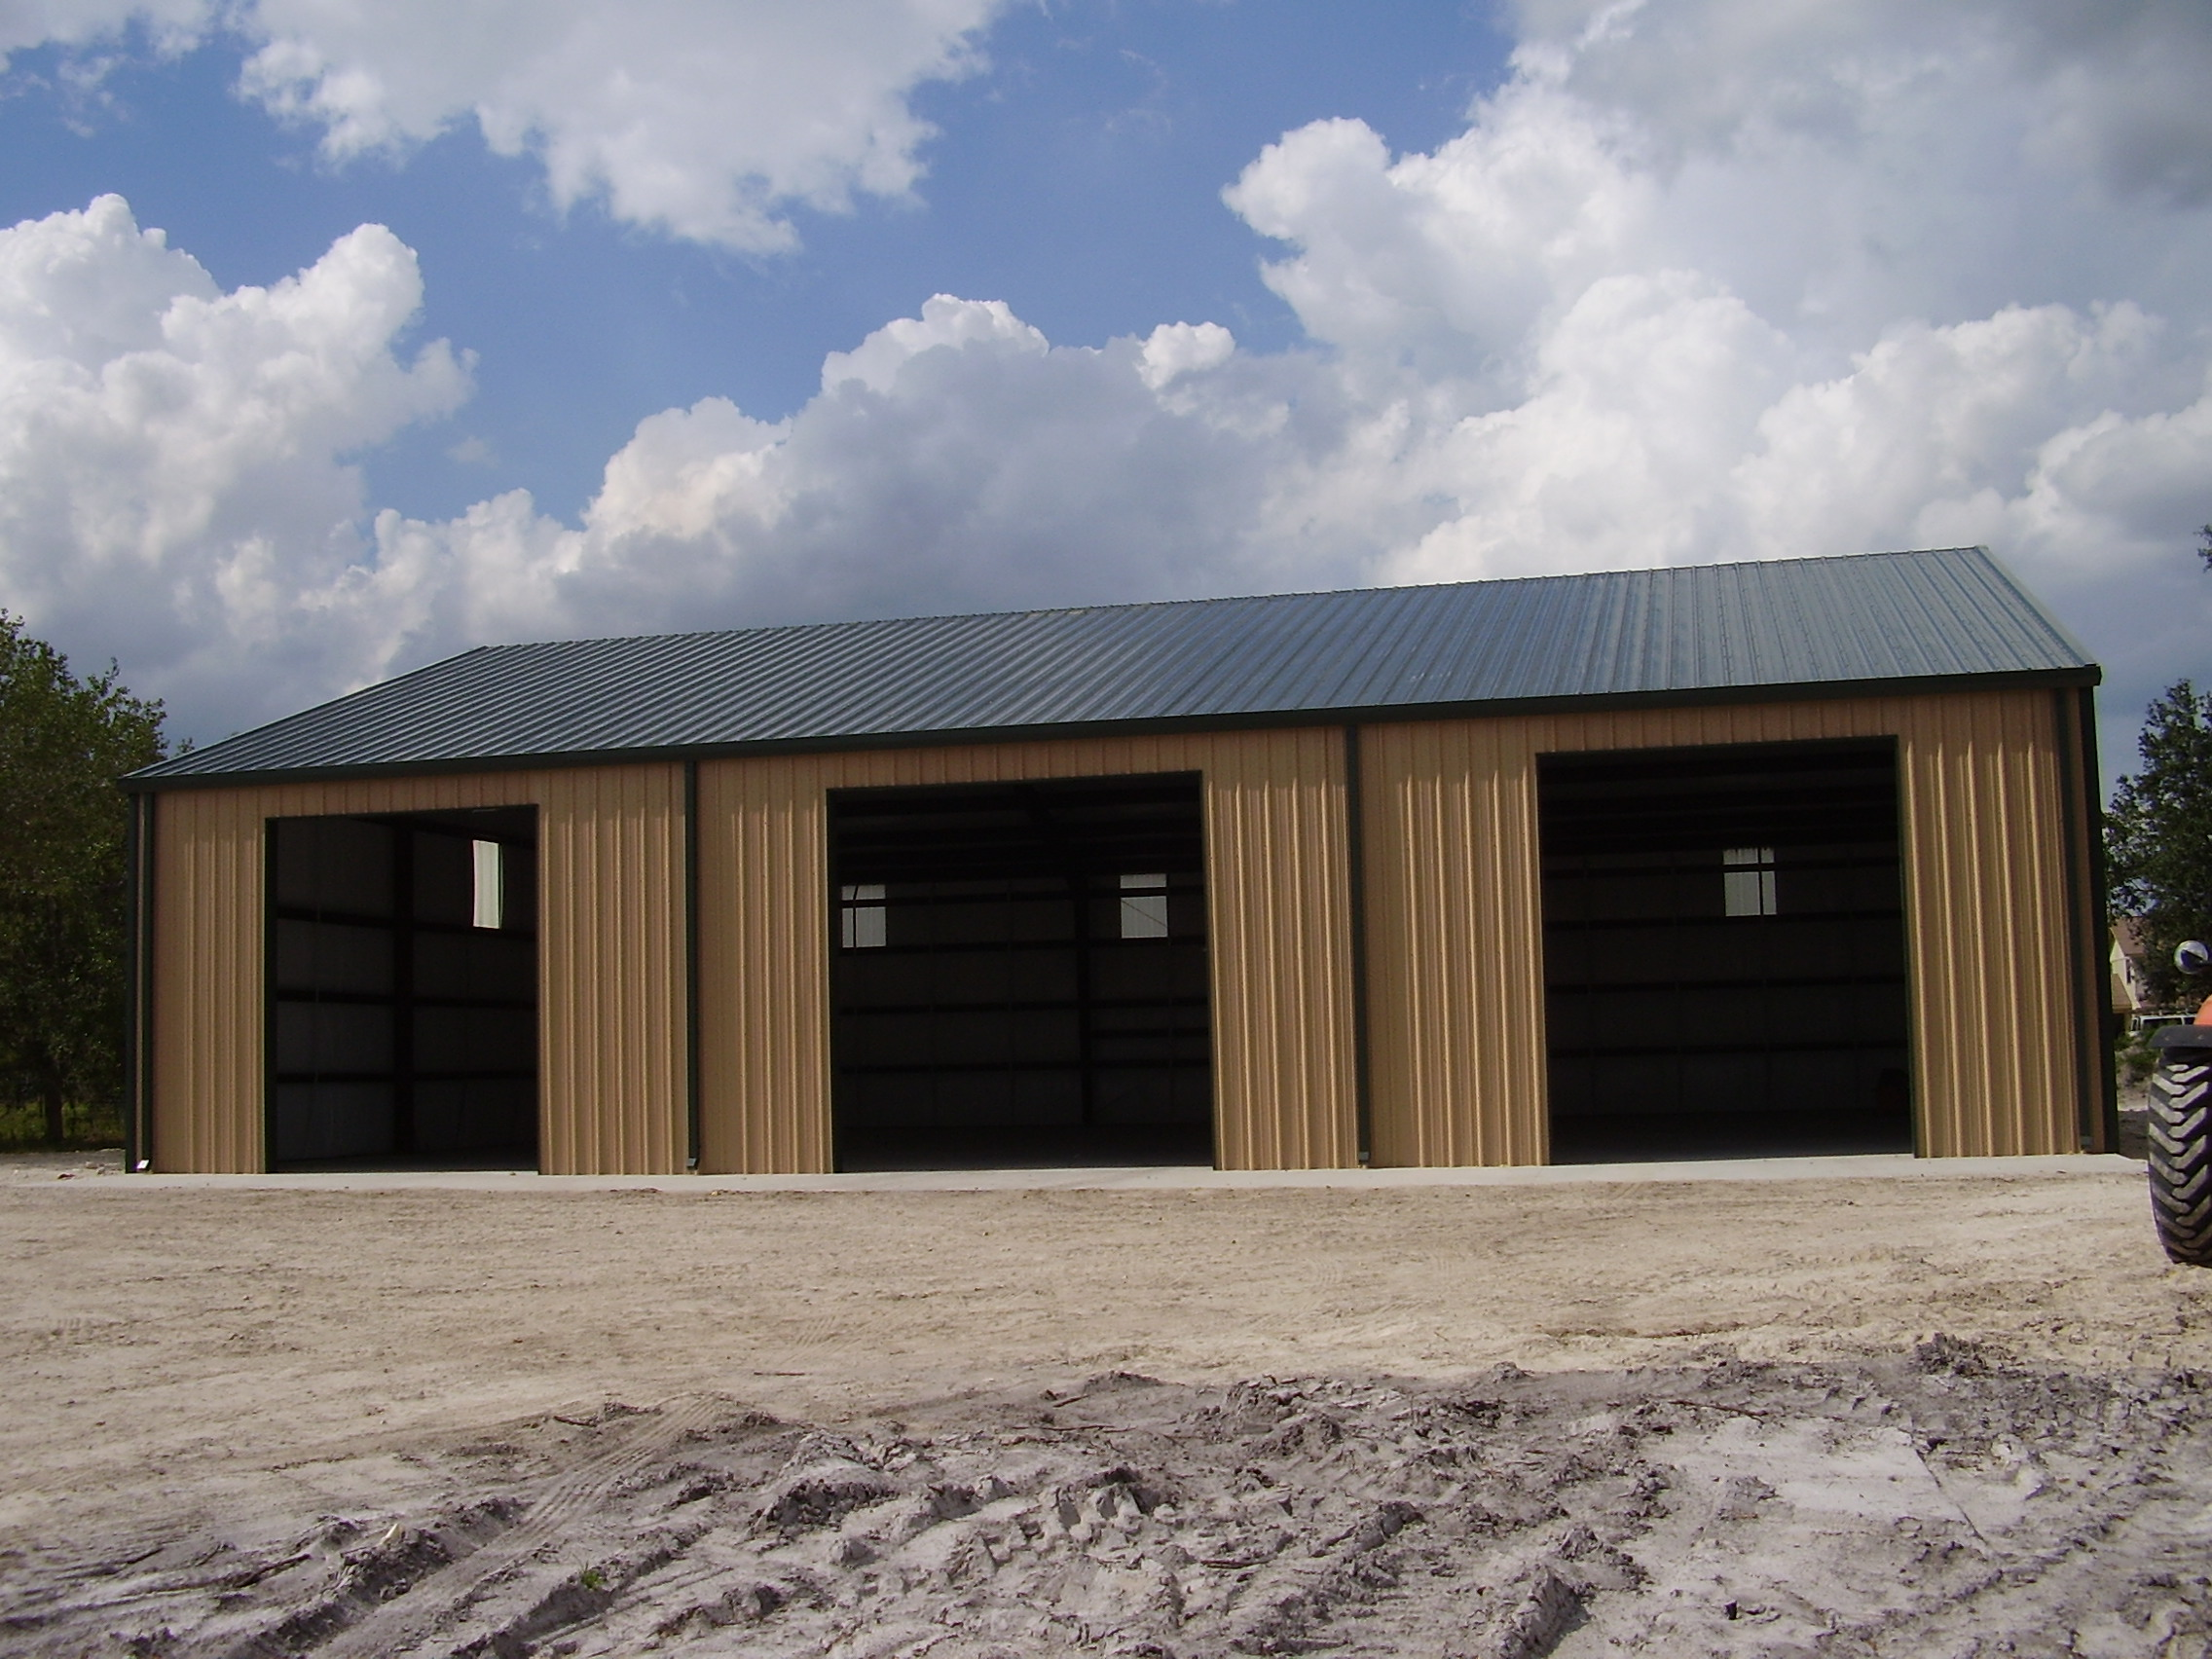 Commercial Metal Buildings Barn With Living Quarters Plans